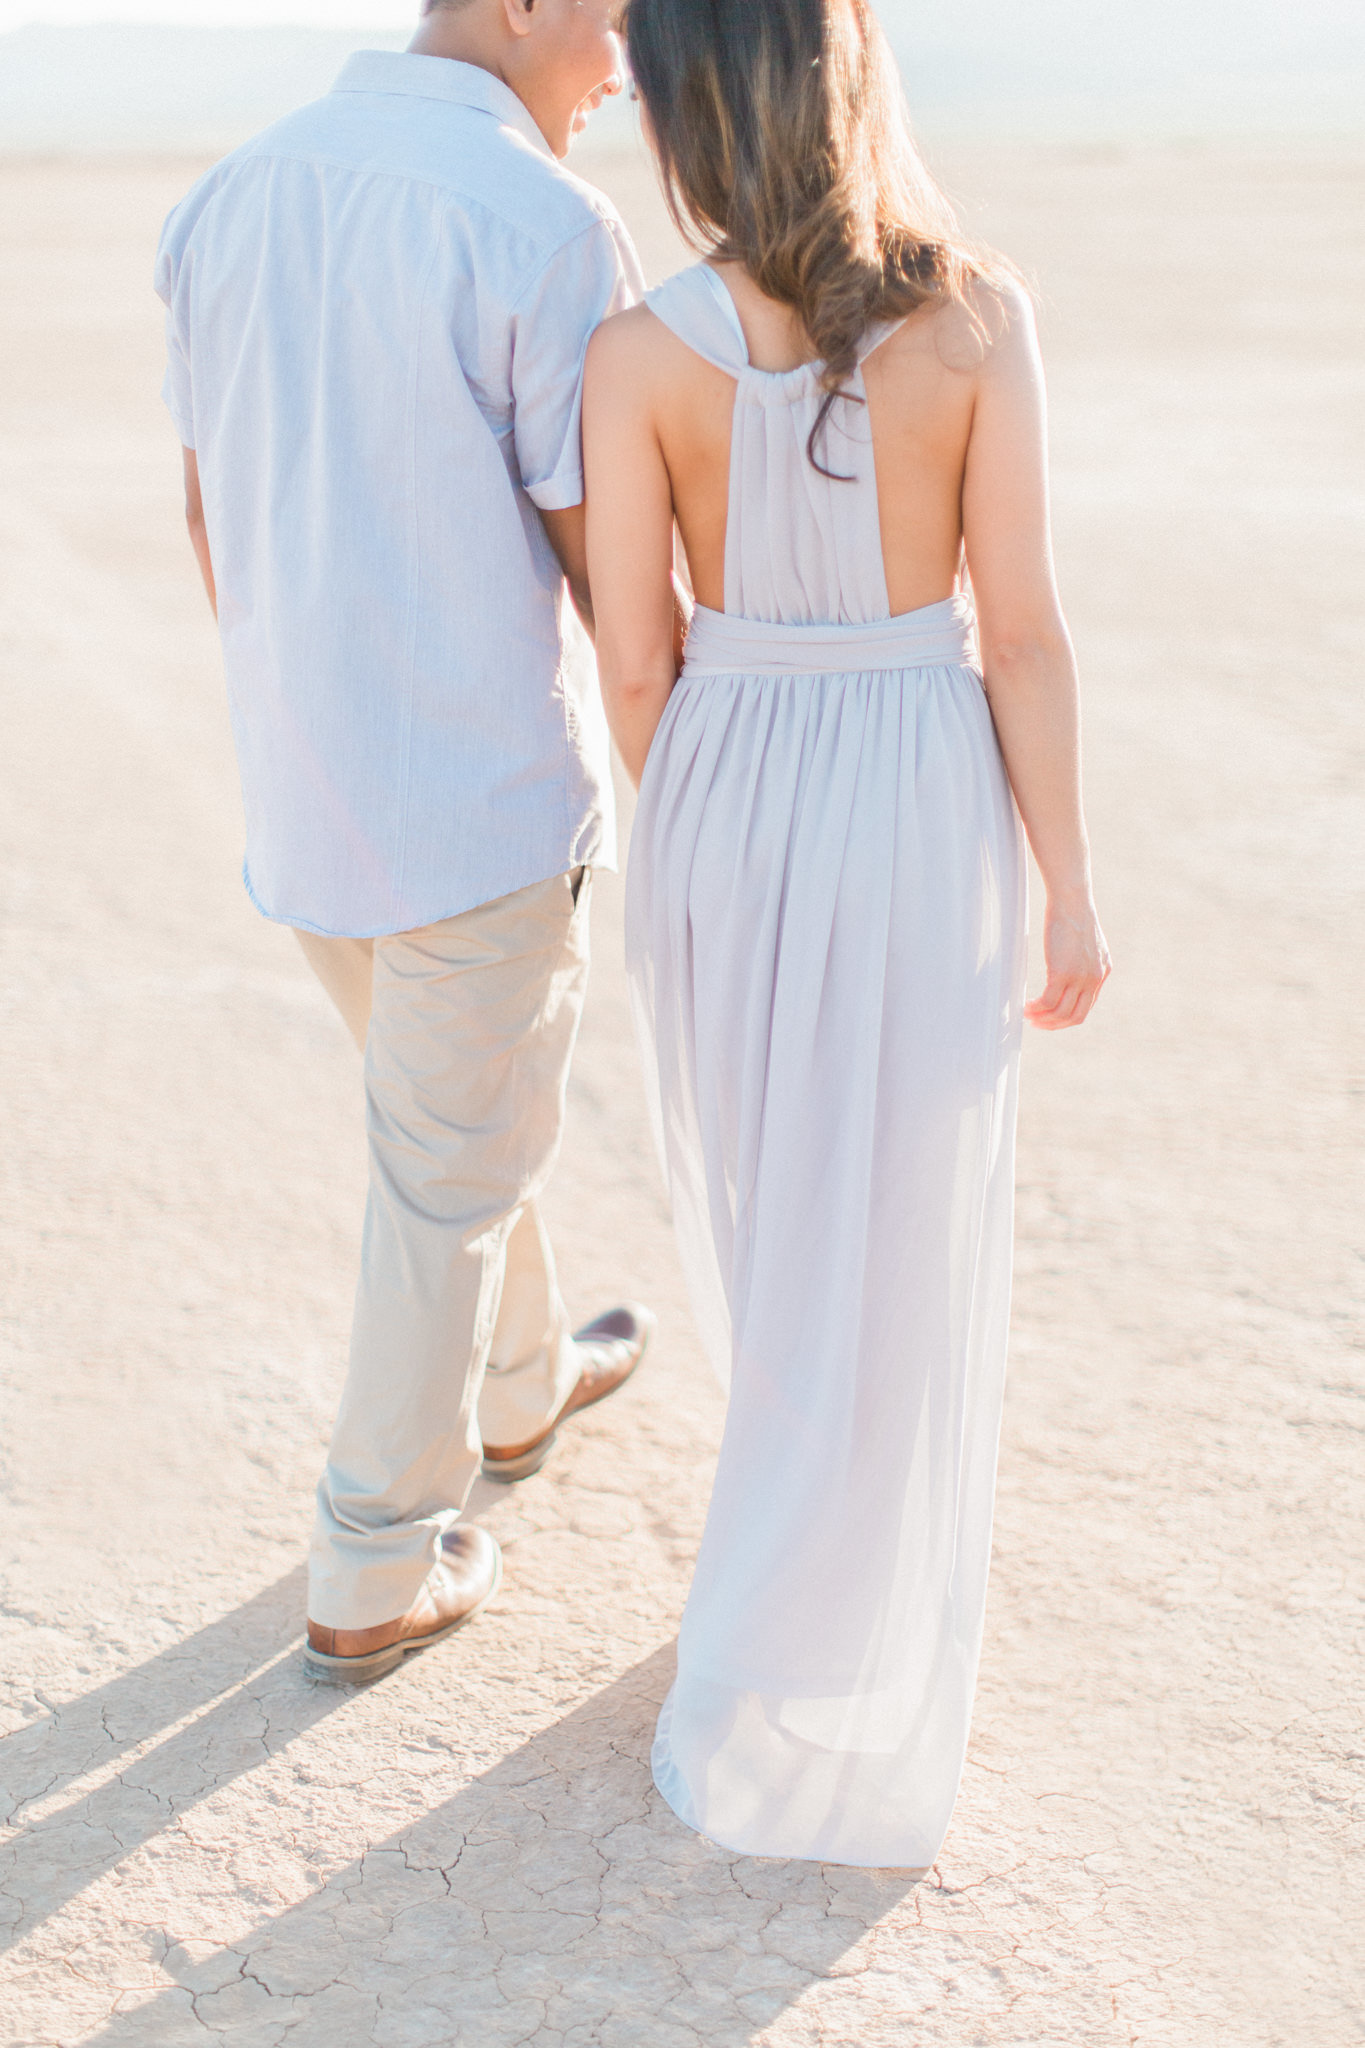 las-vegas-engagement-photographer-desert-8